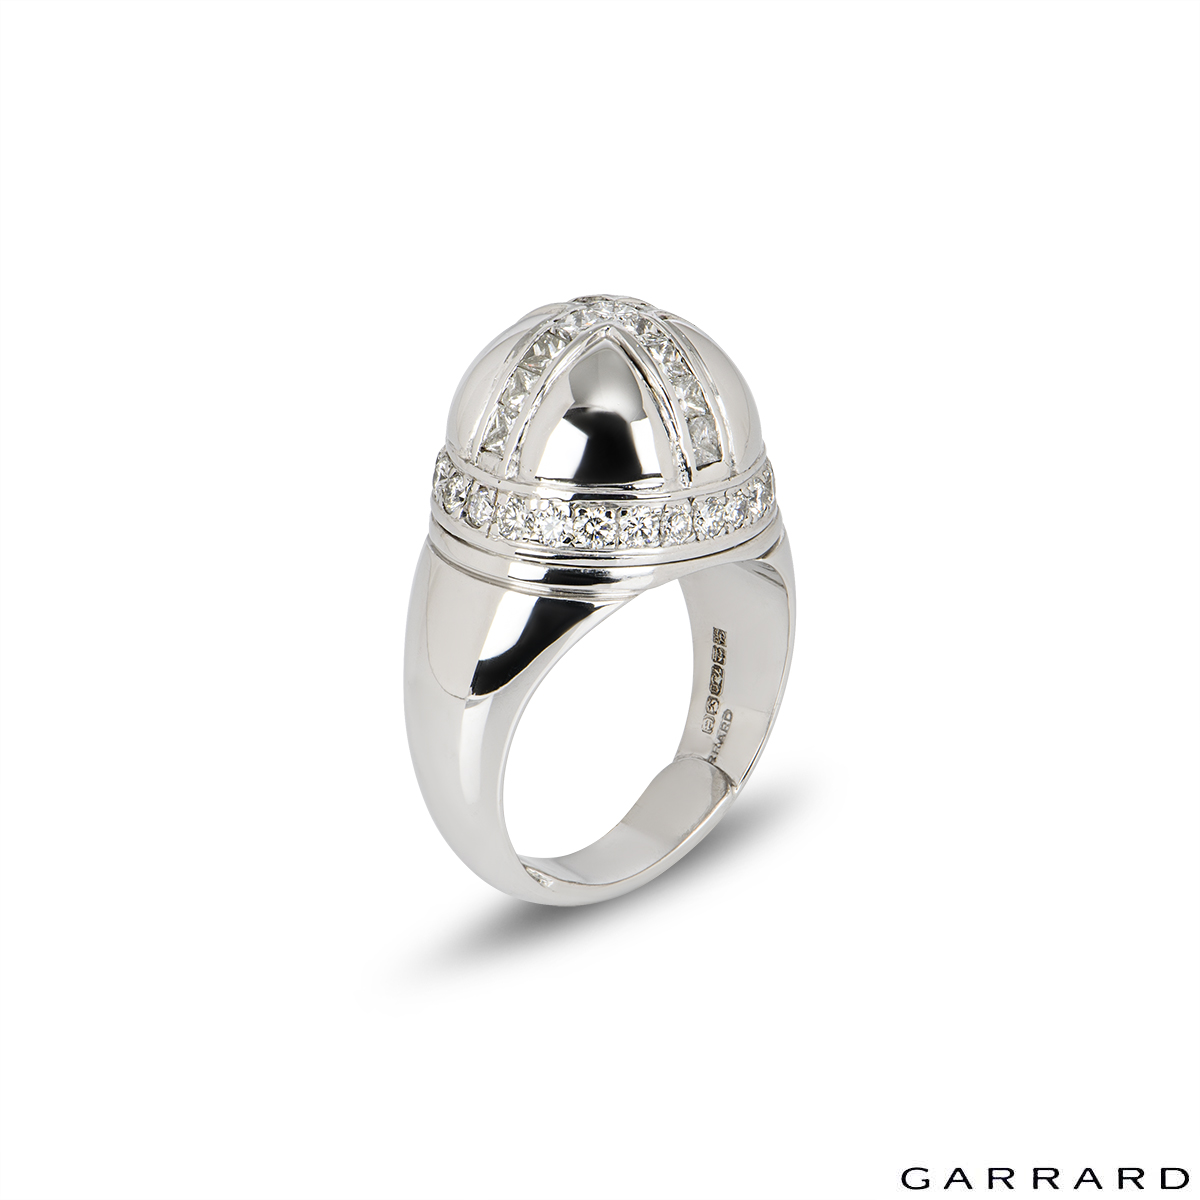 Garrard 18k White Gold Diamond Dress Ring